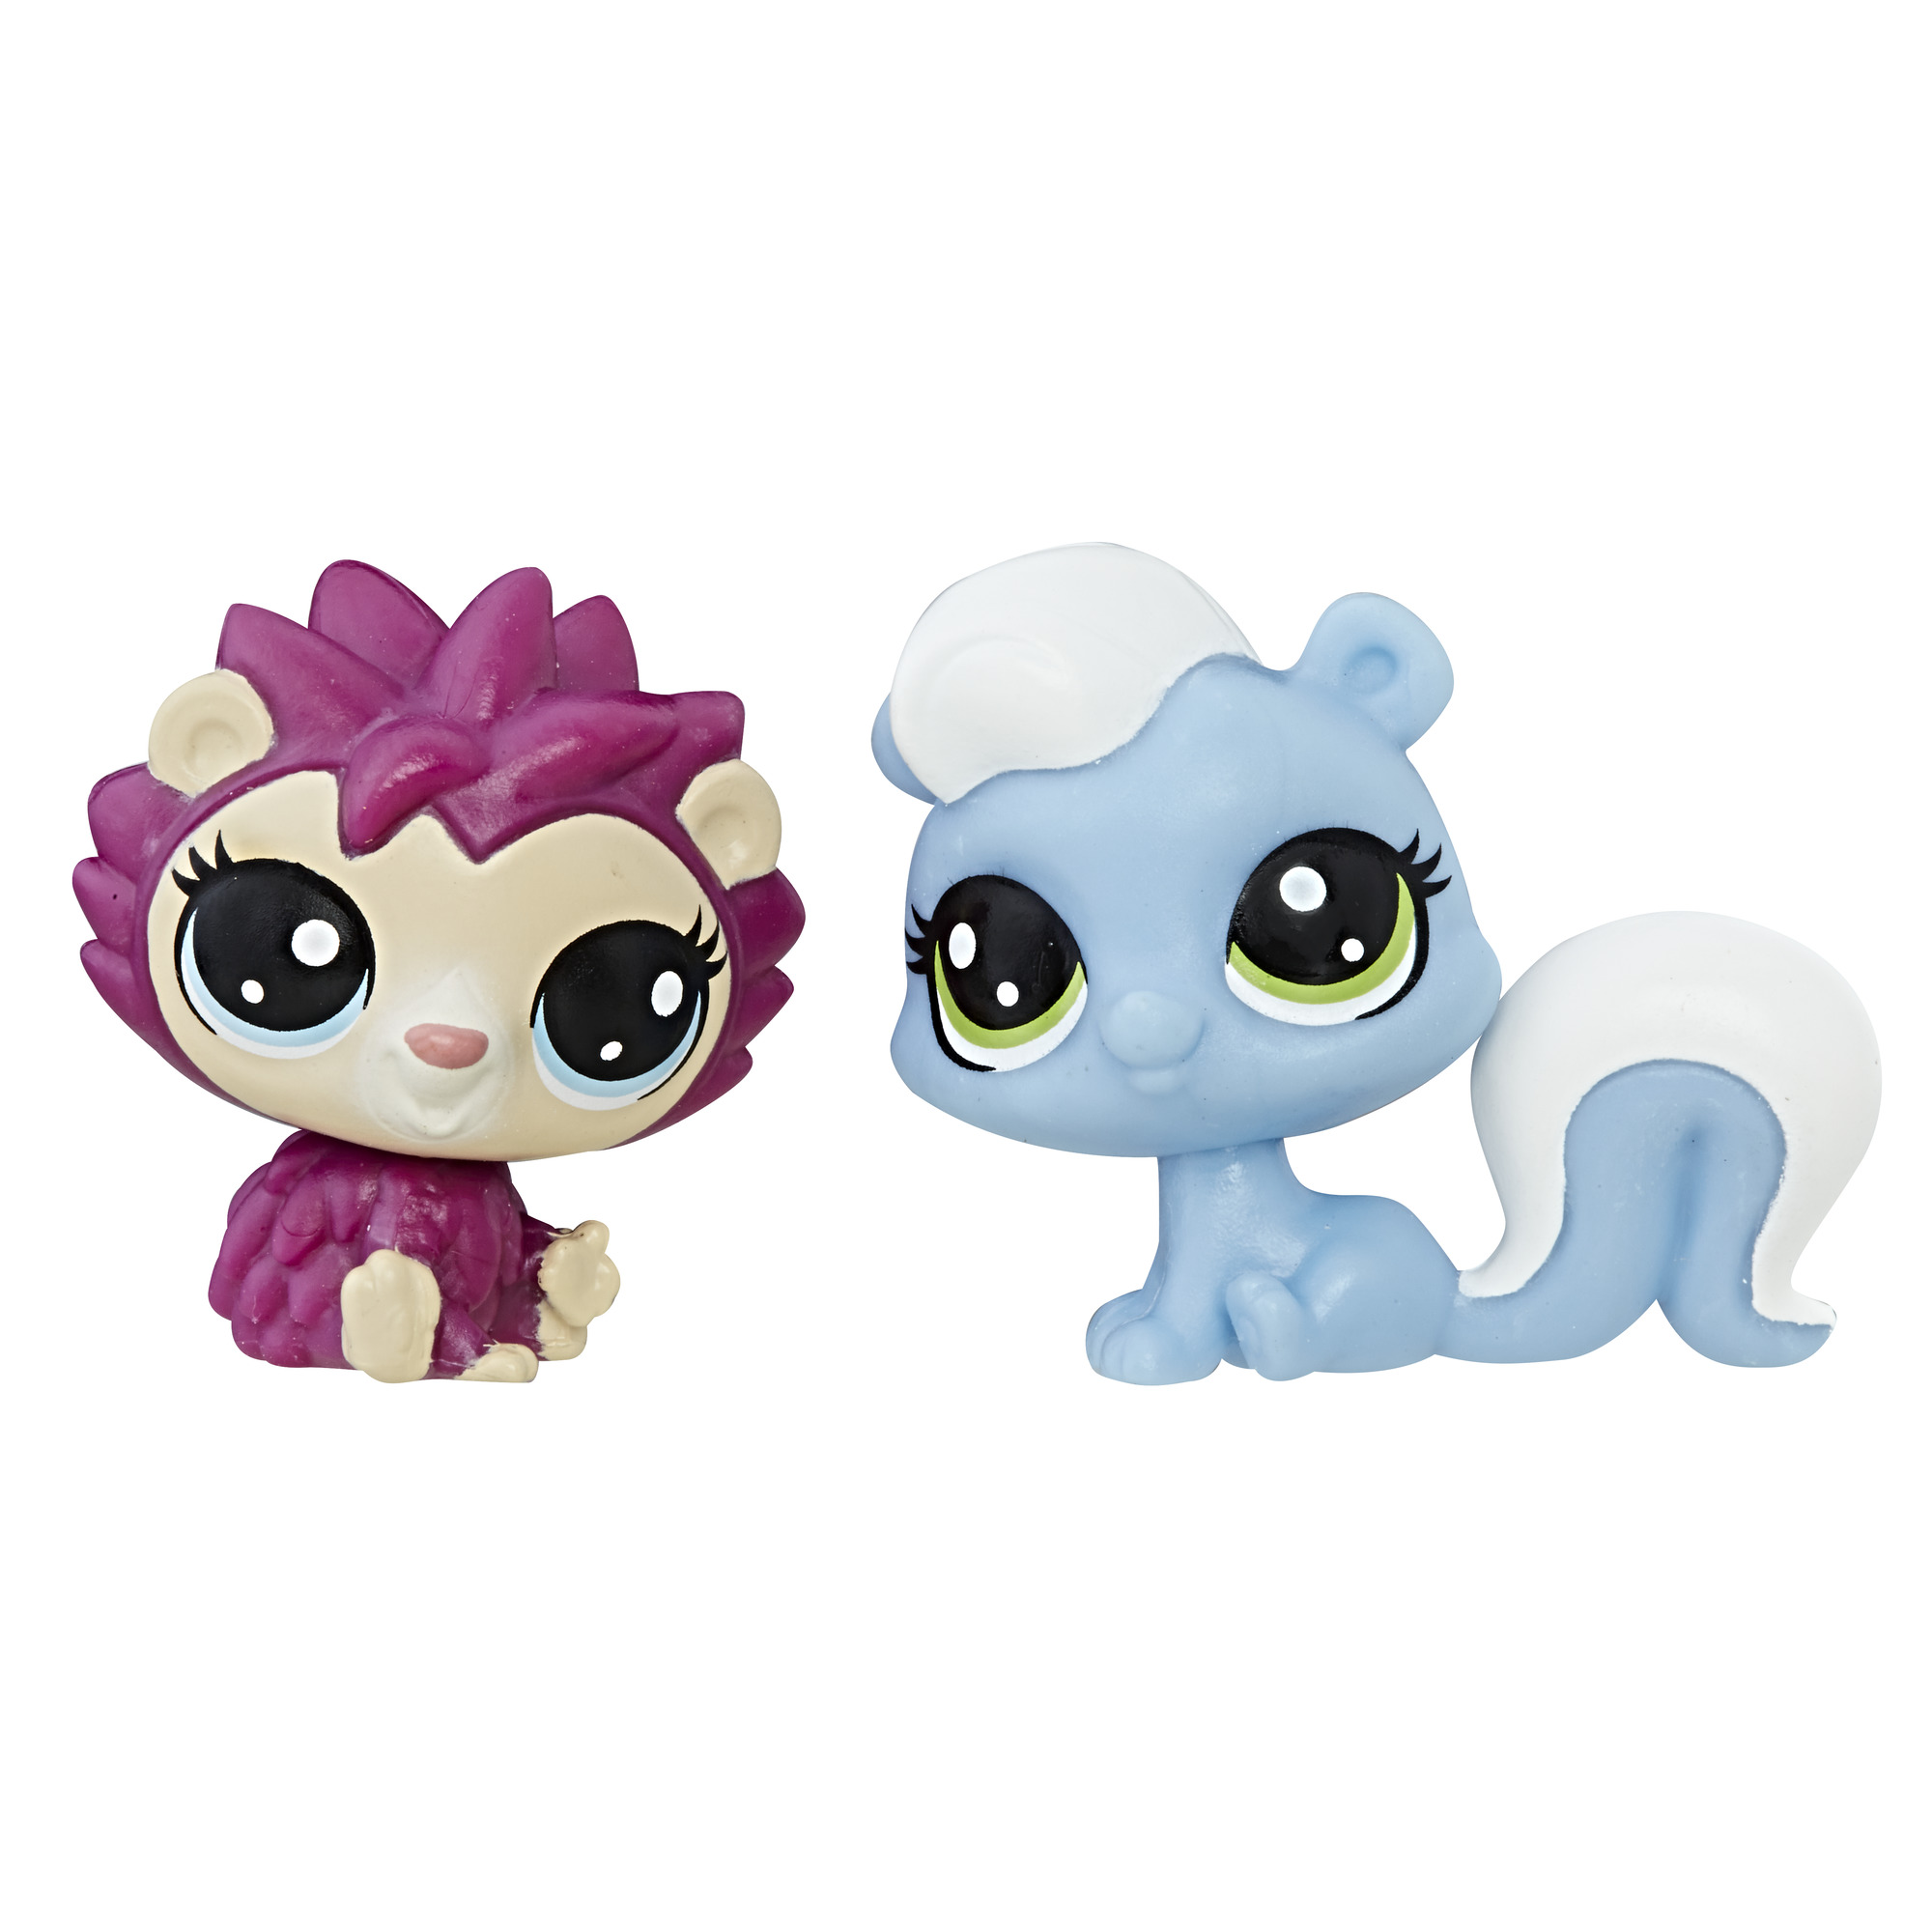 Littlest Pet Shop Mini 2-Pack (skunk/hedgehog)